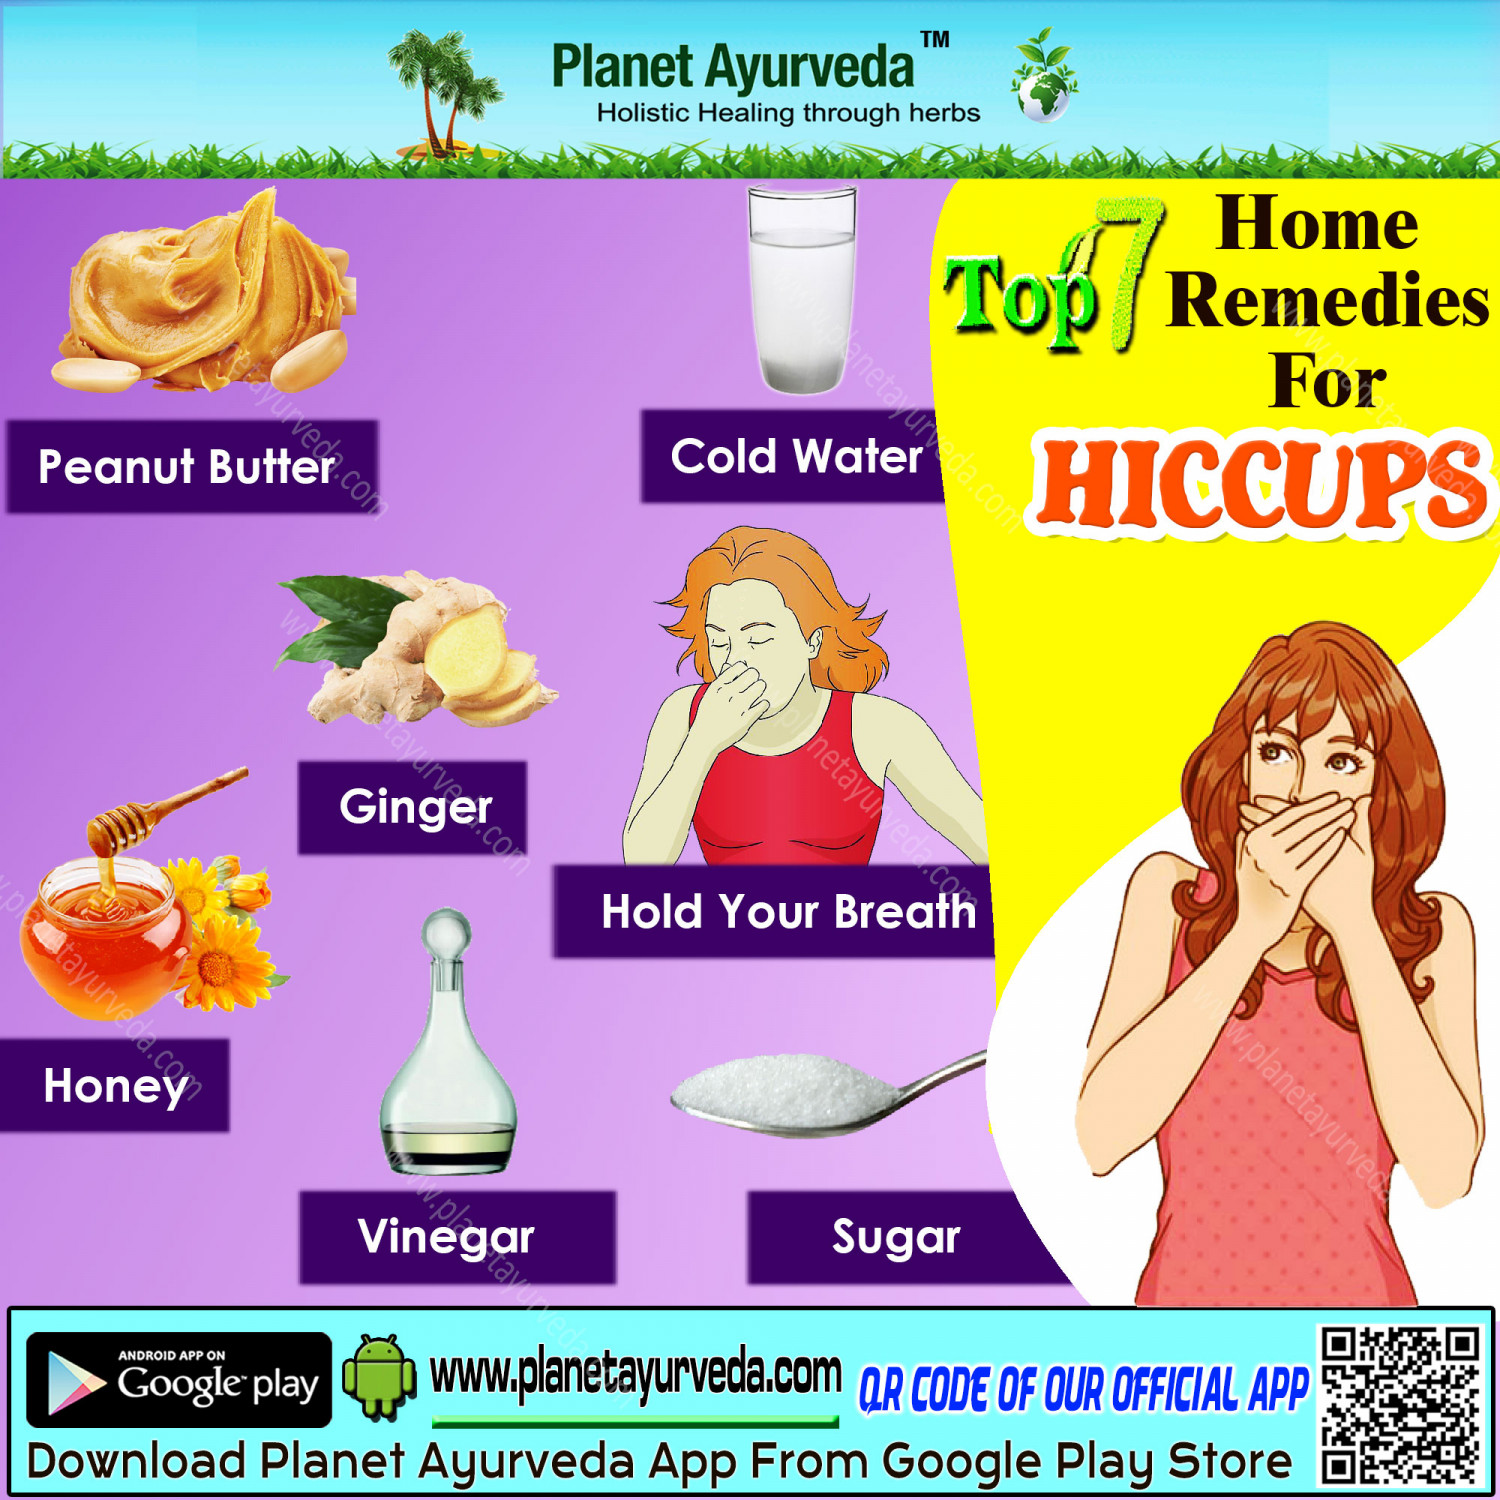 Home Remedies for Hiccups - Top 7 Home Remedies Infographic